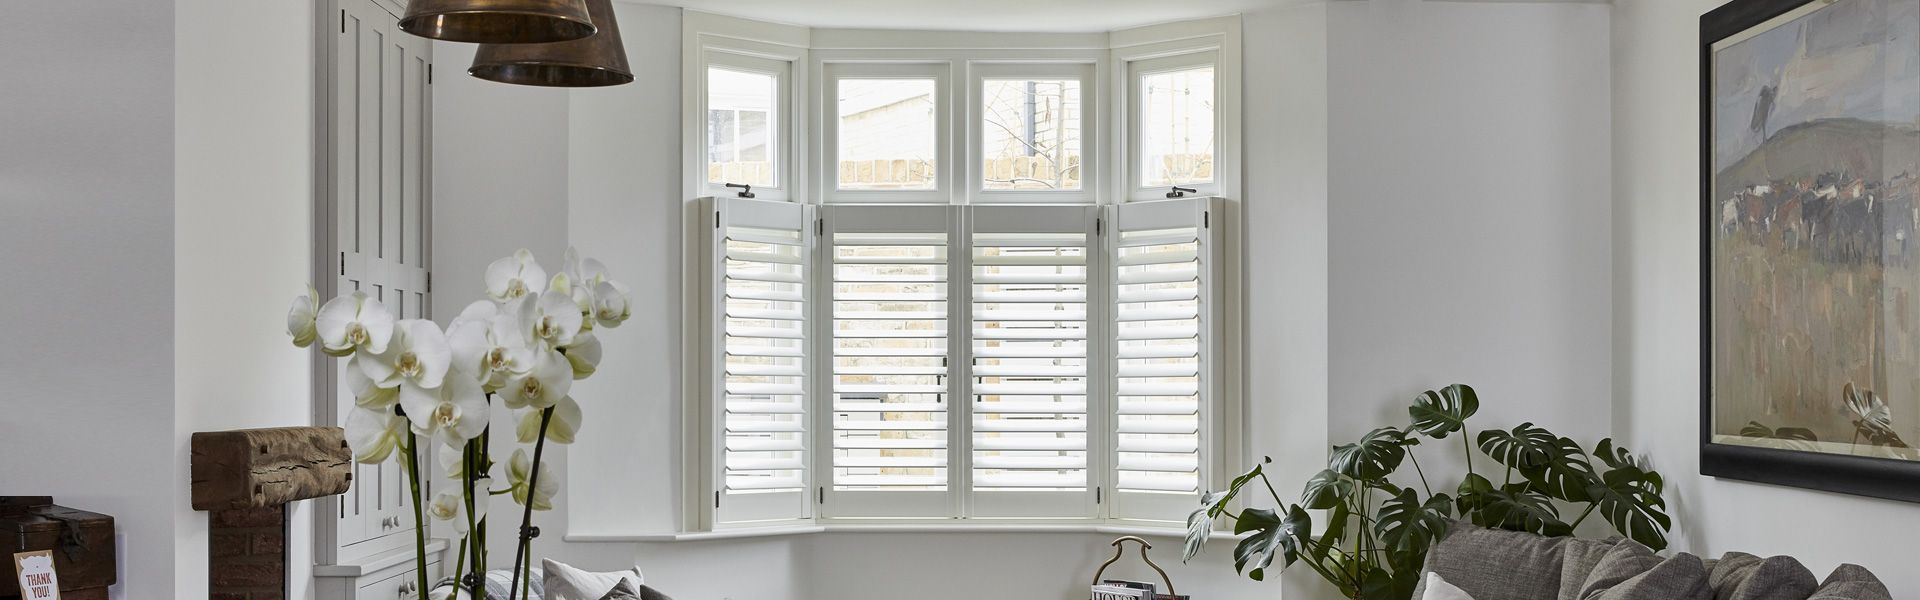 Café Style Shutters for Bay Windows by Plantation Shutters Ltd